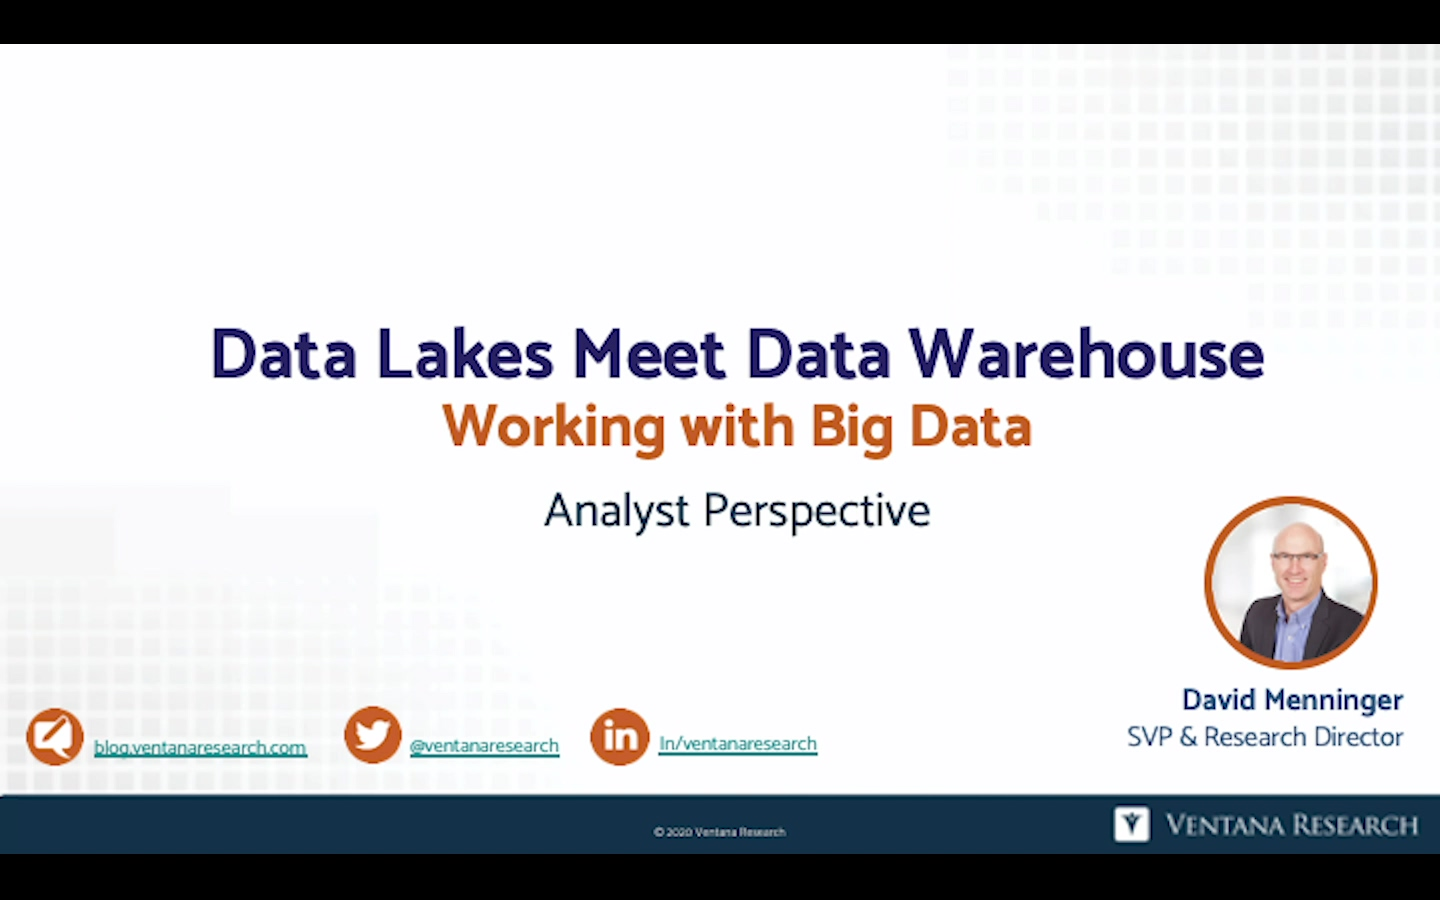 Ventana_Research_Analyst_Perspective_Data_Lakes_2020